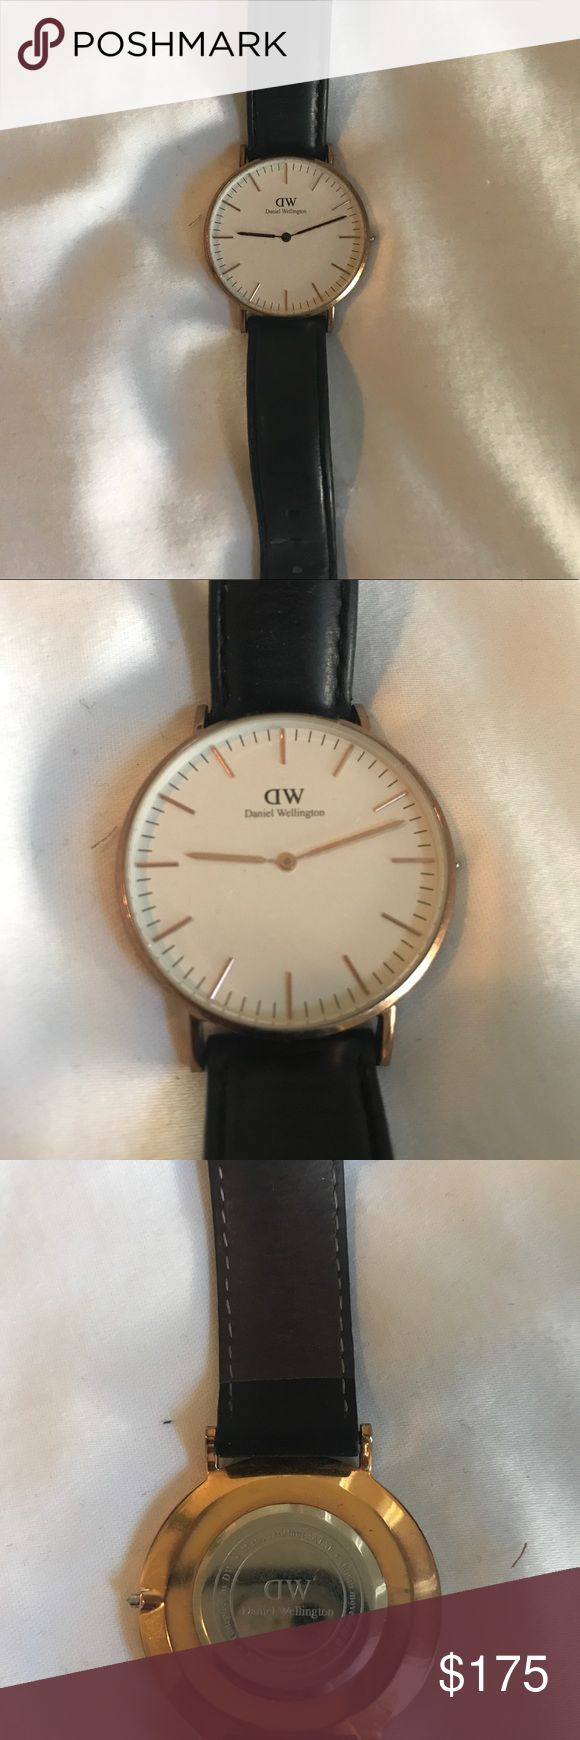 Black Daniel Wellington Sheffield Watch Selling this classic Daniel Wellington watch. Black leather arm band and gold details. Slightly worn, only needs a new battery! Daniel Wellington Accessories Watches